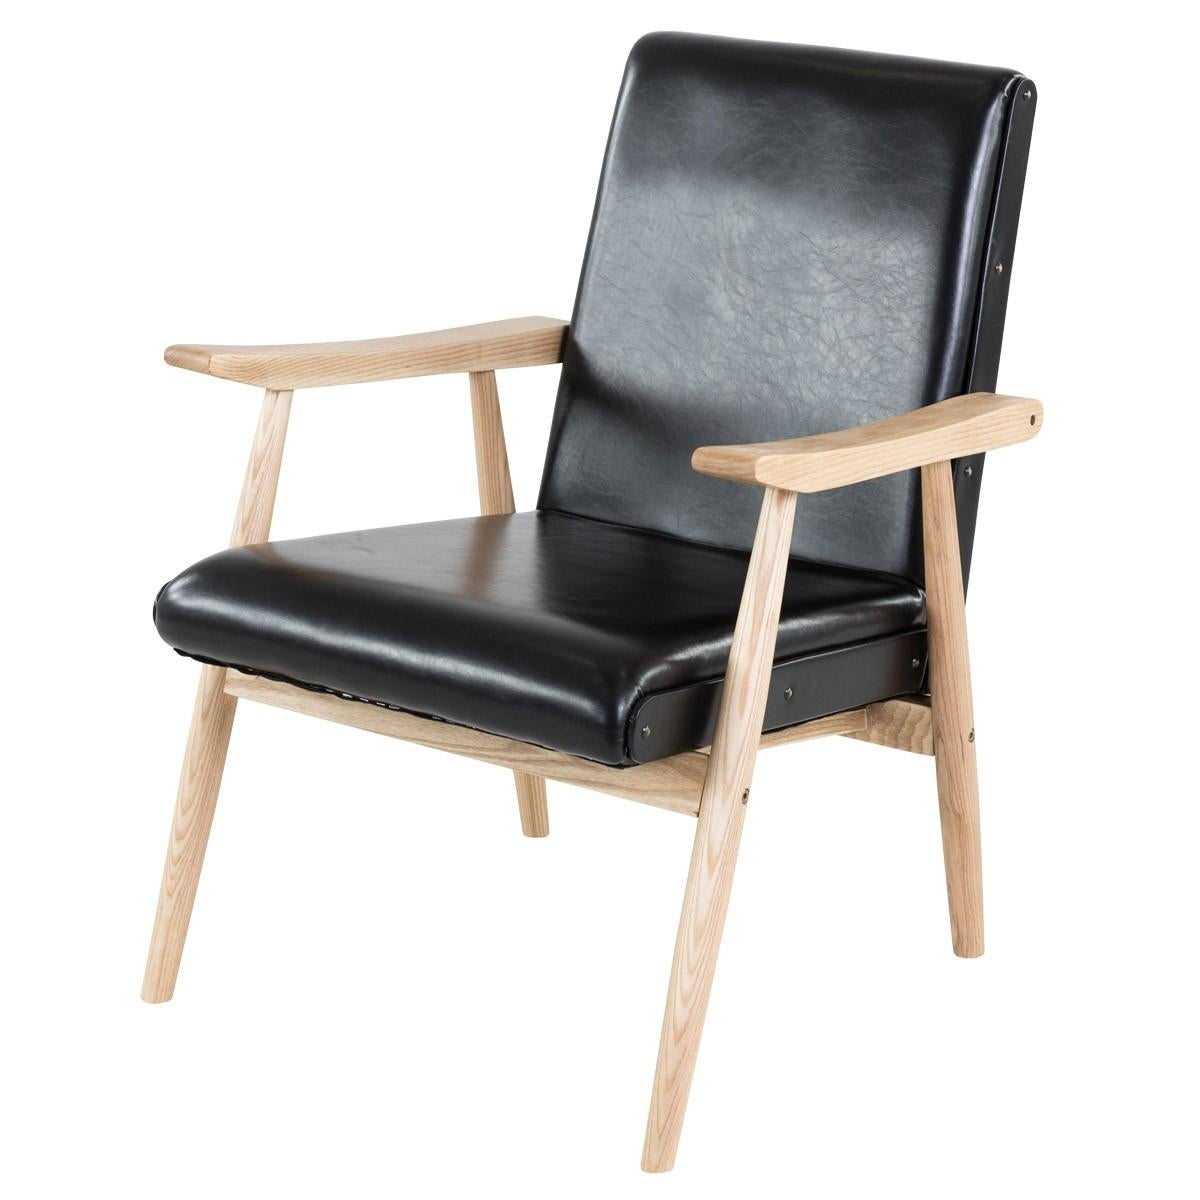 1950s Design Wooden and Black Faux Leather Armchair